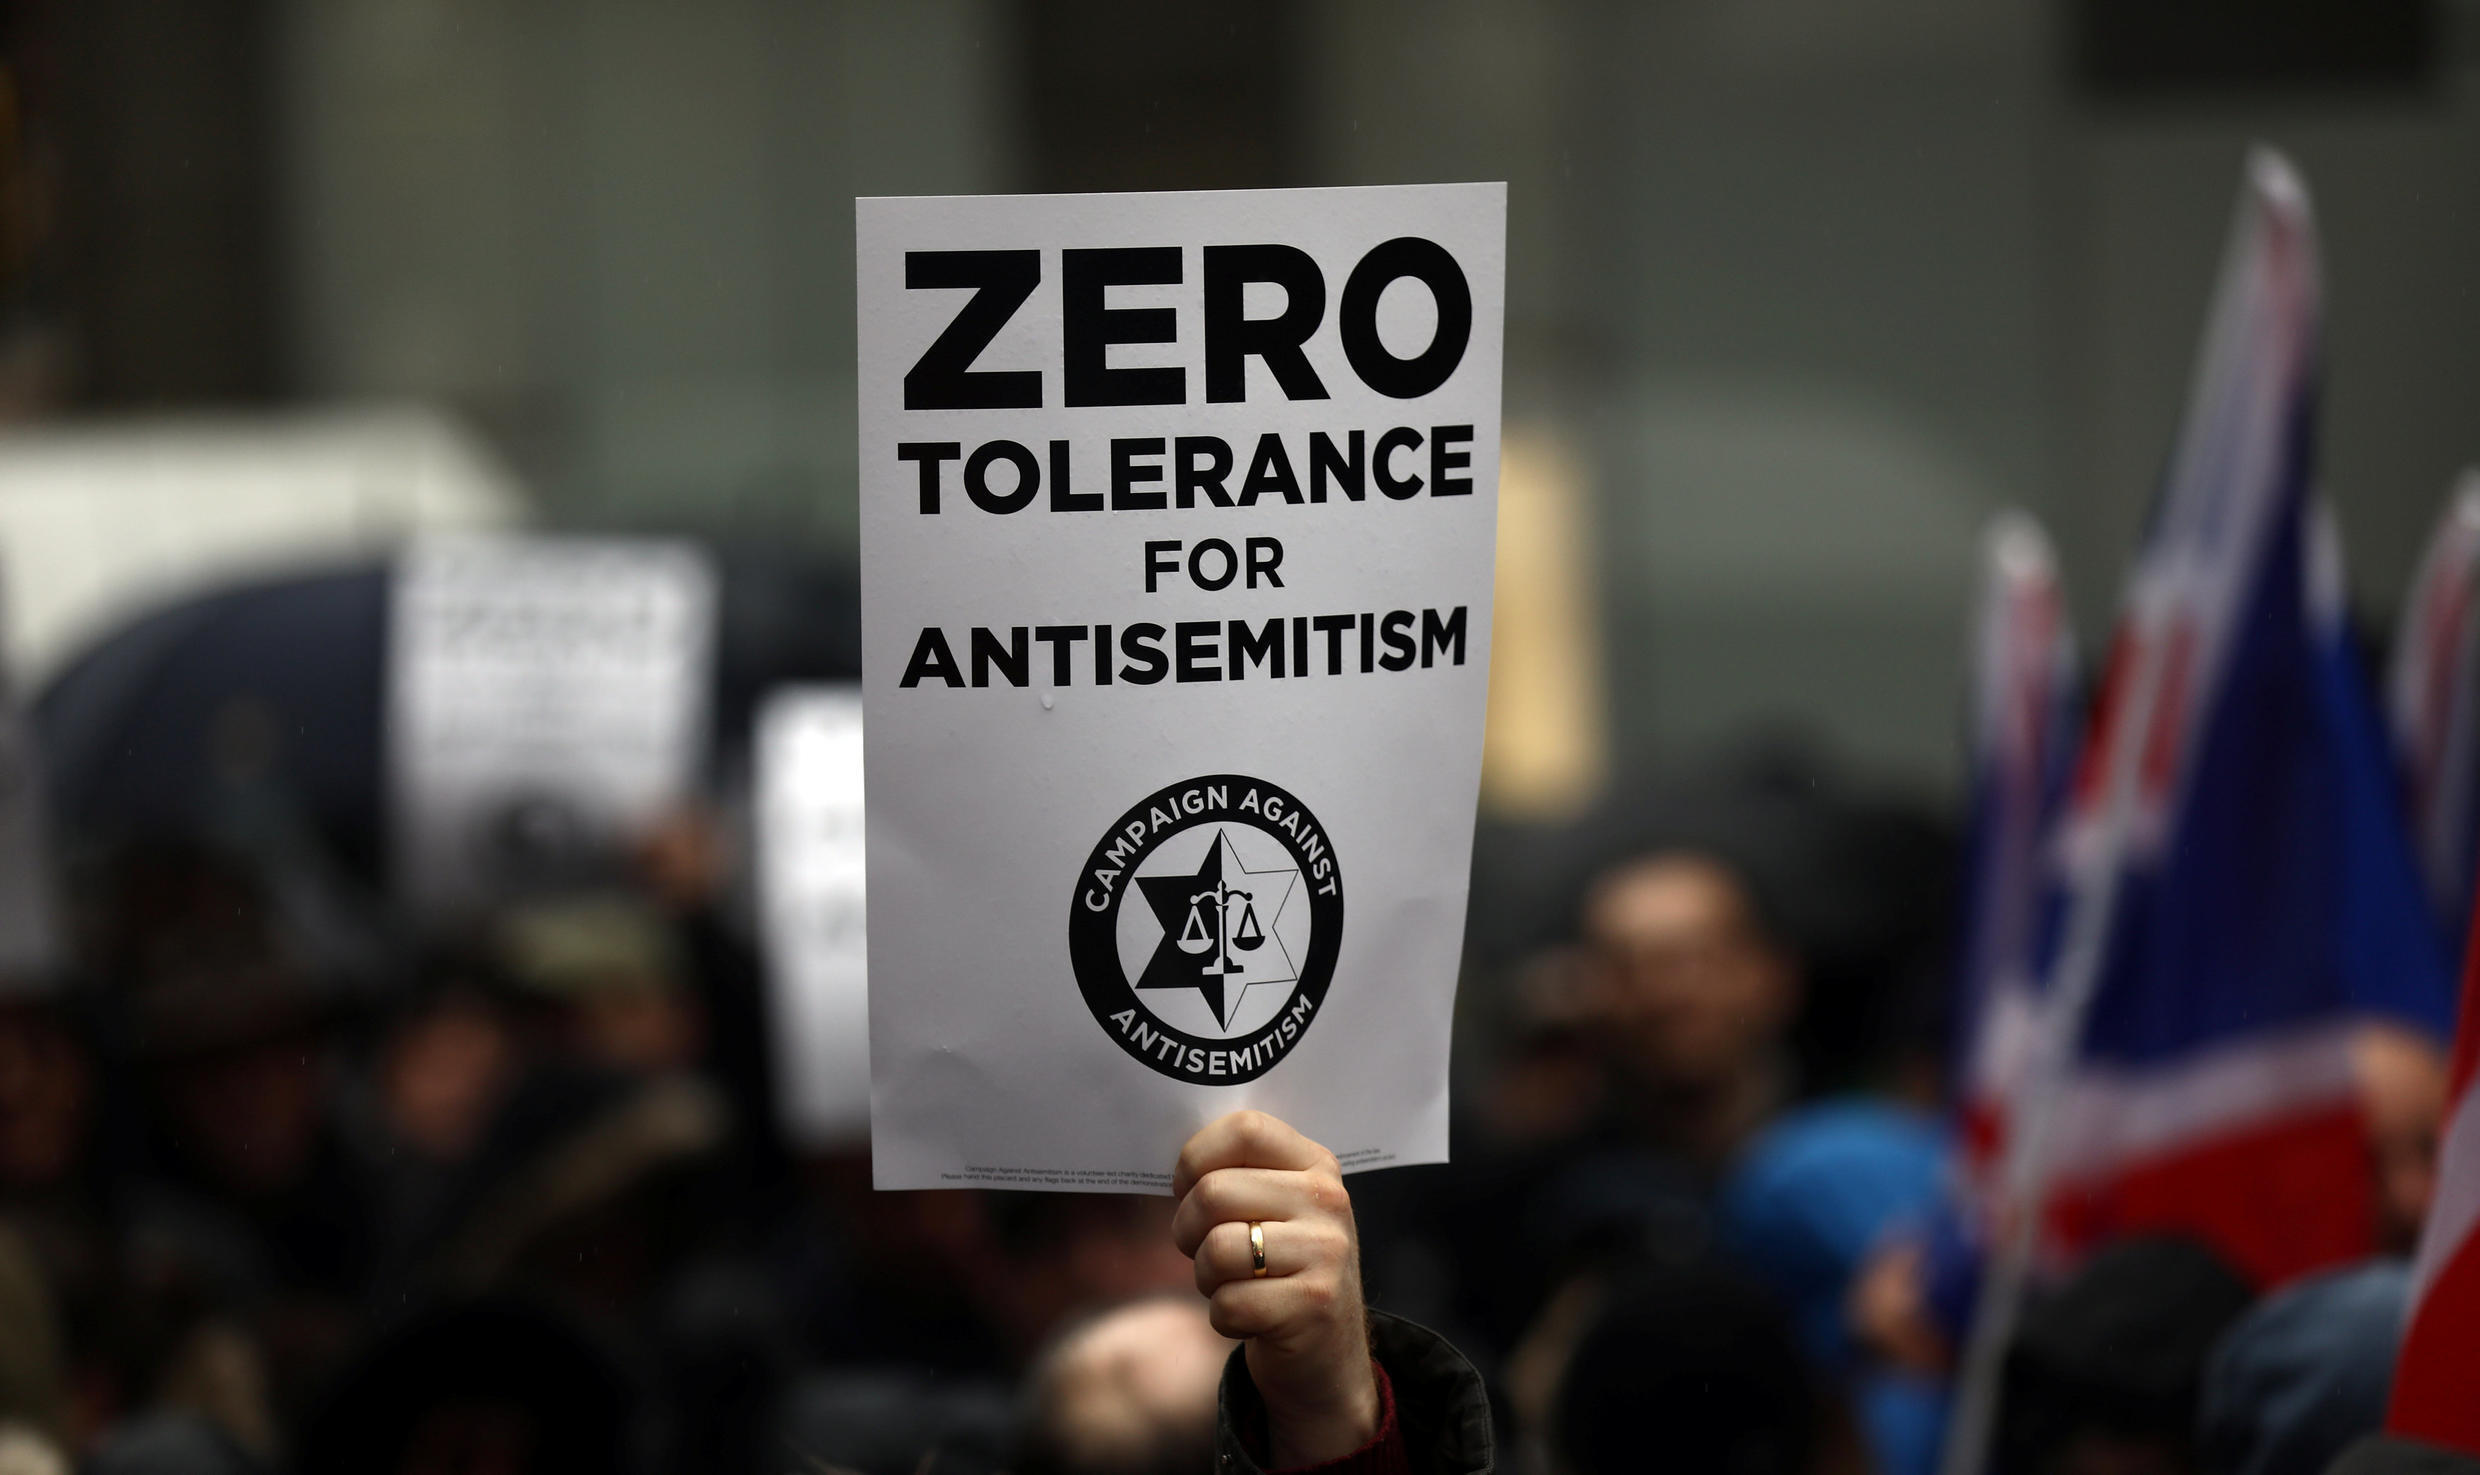 Demonstrators take part in an antisemitism protest outside the Labour Party headquarters in central London, Britain April 8, 2018.